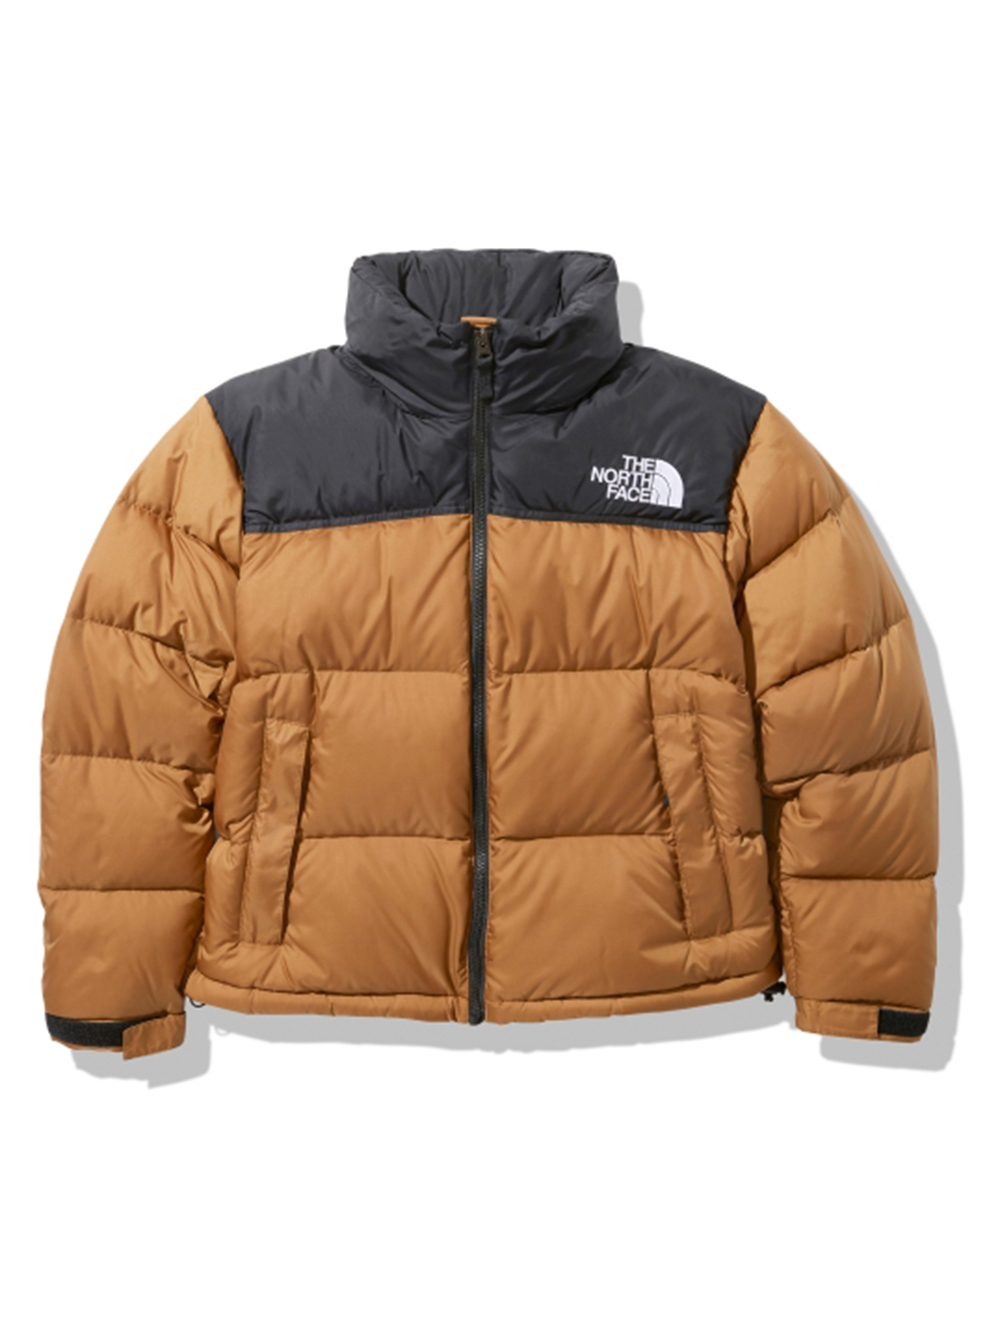 【THE NORTH FACE】Short Nuptse Jacket